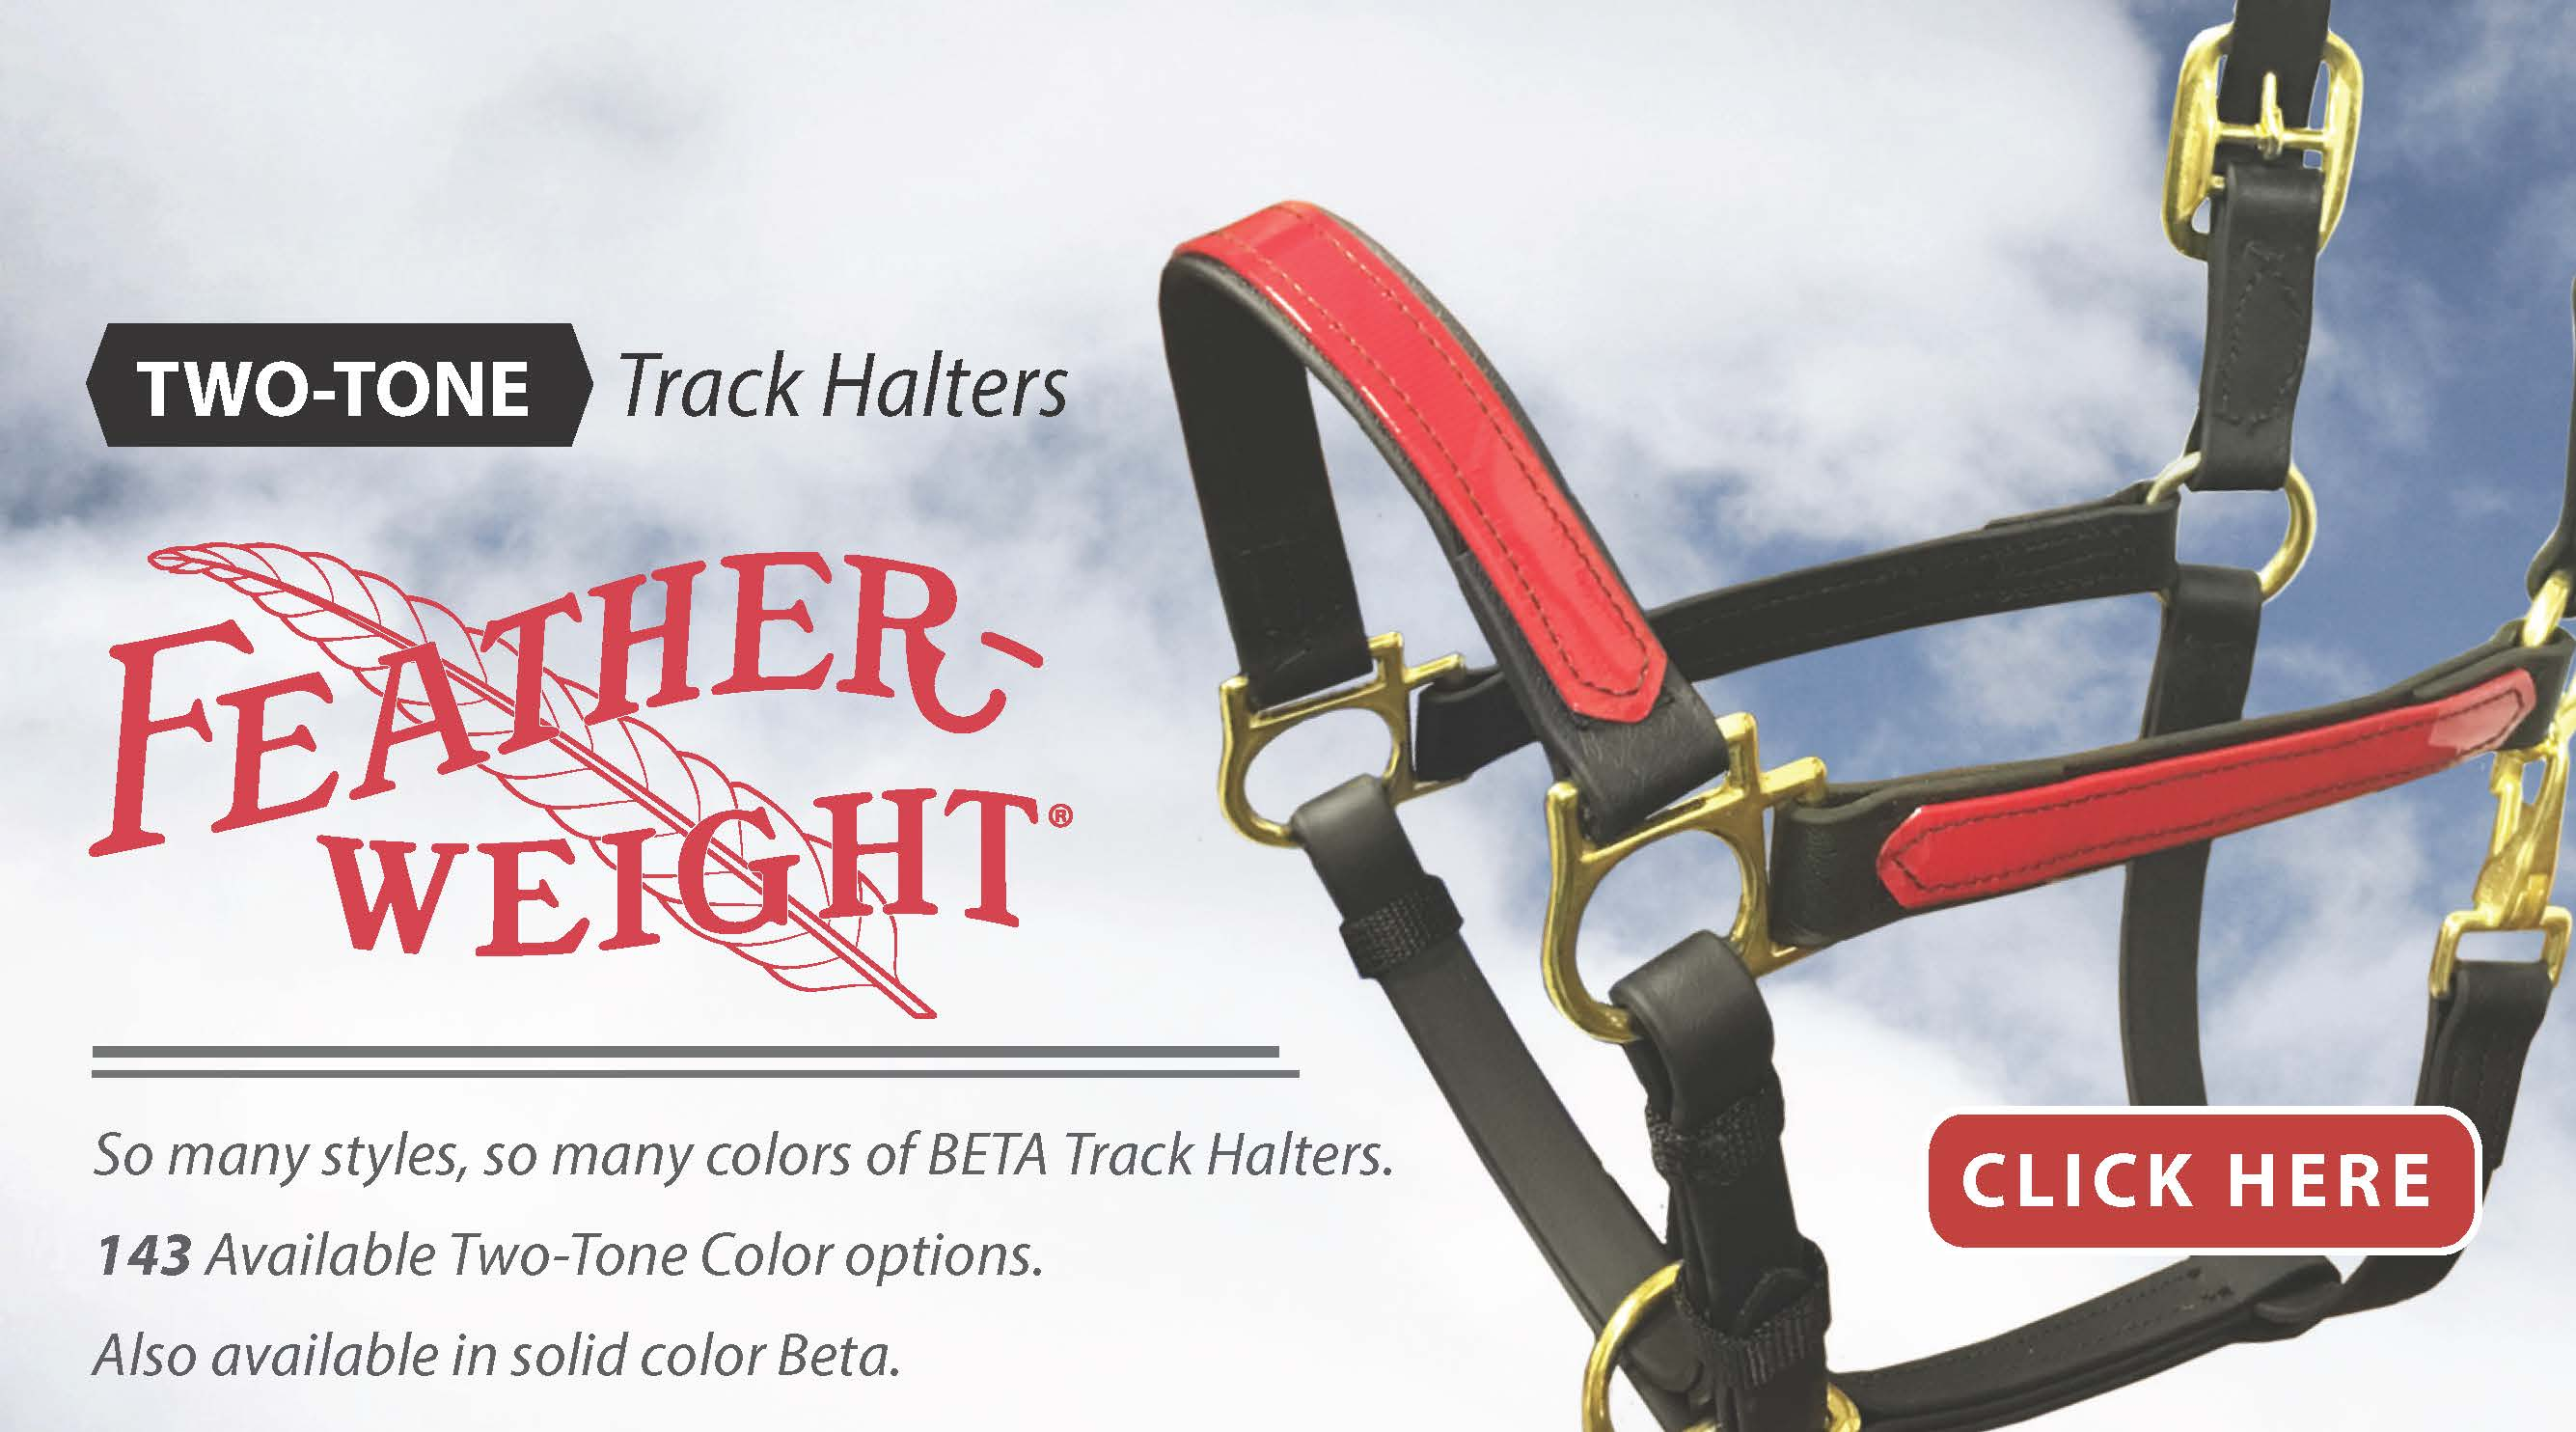 New Two Tone Halters from Feather-Weight®